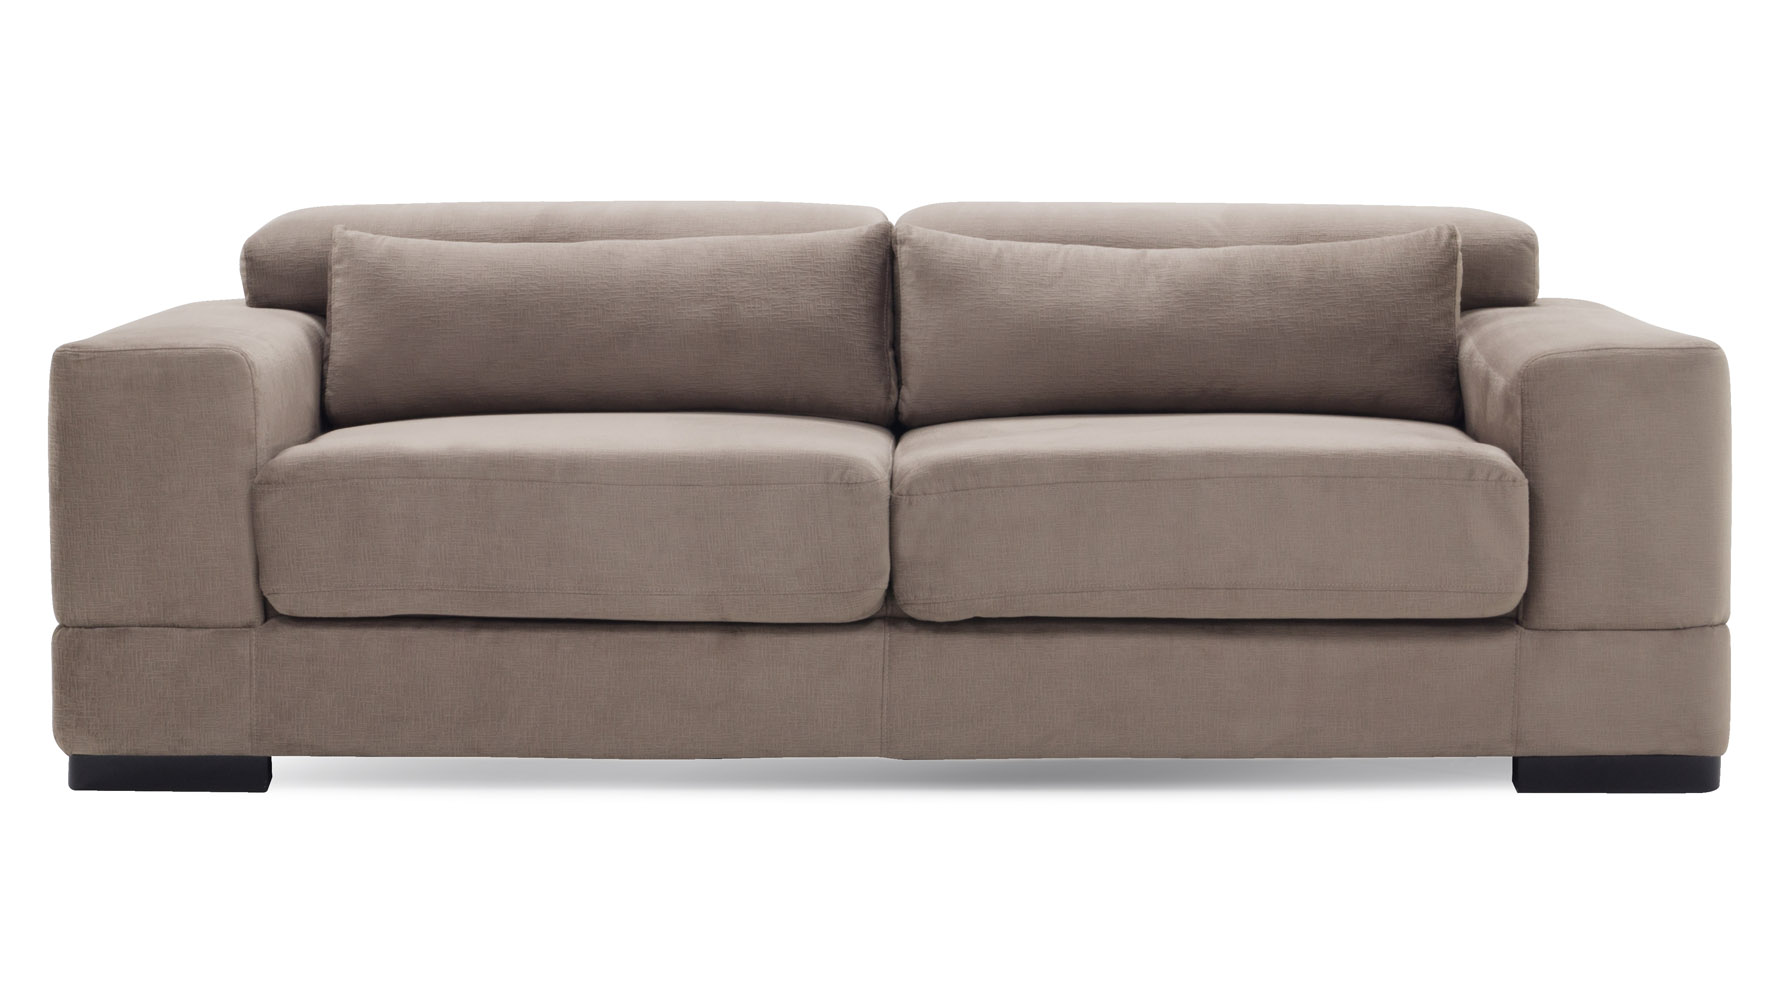 Chester Pull Out Fabric Sleeper Sofa